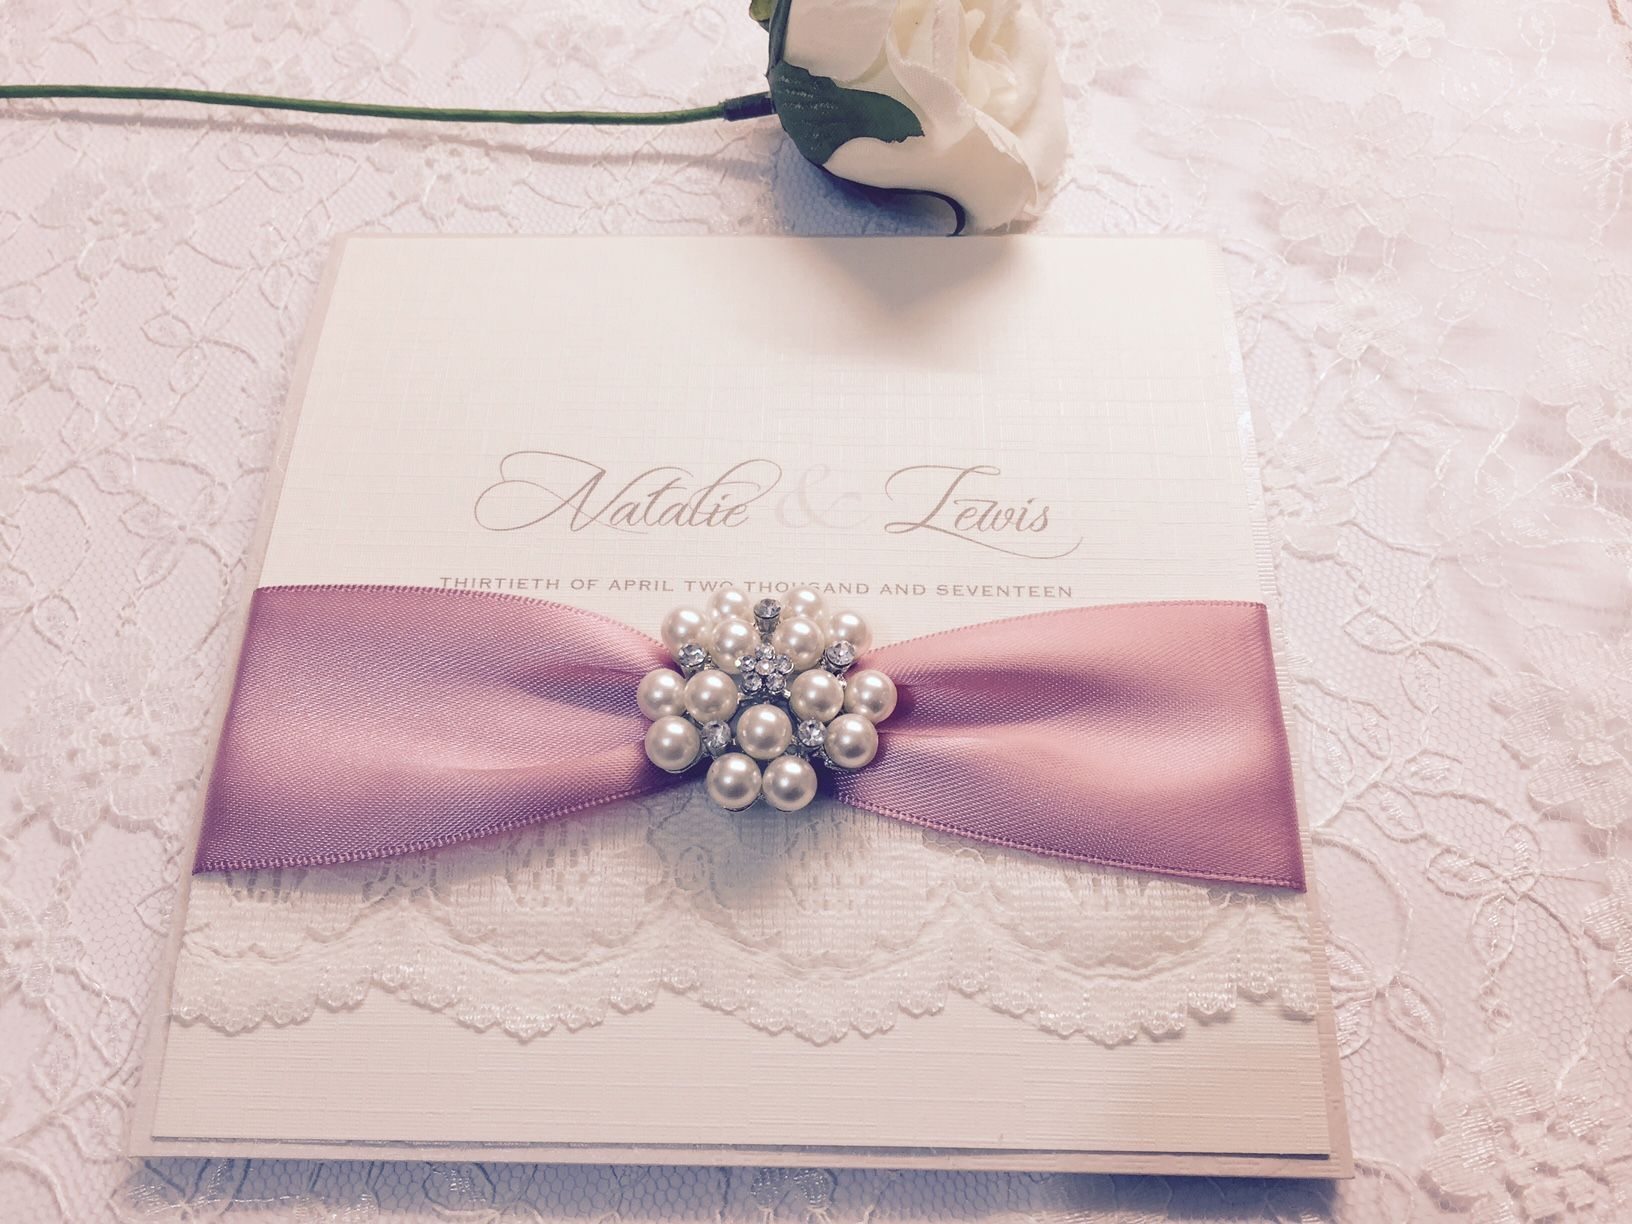 Chloe vintage invitation with lace pearl brooch and ribbon